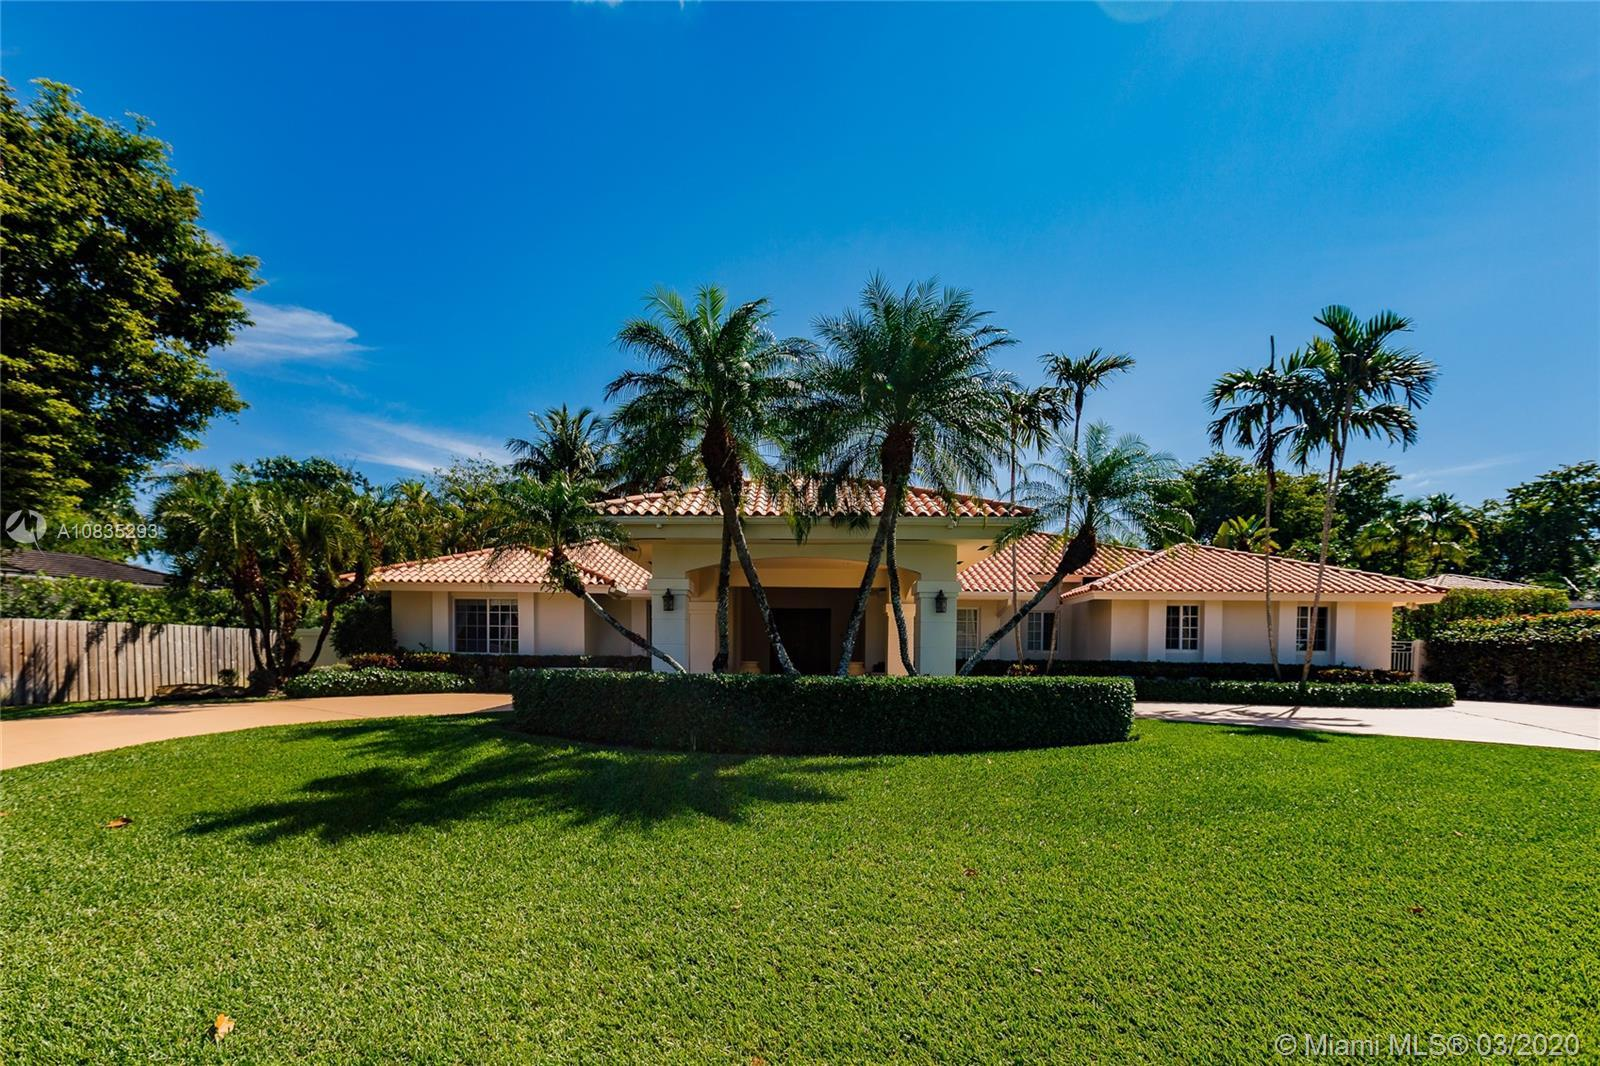 This wonderful 4 bedroom, 4 bath, 2 car garage, pool home is conveniently located just east of Gulli